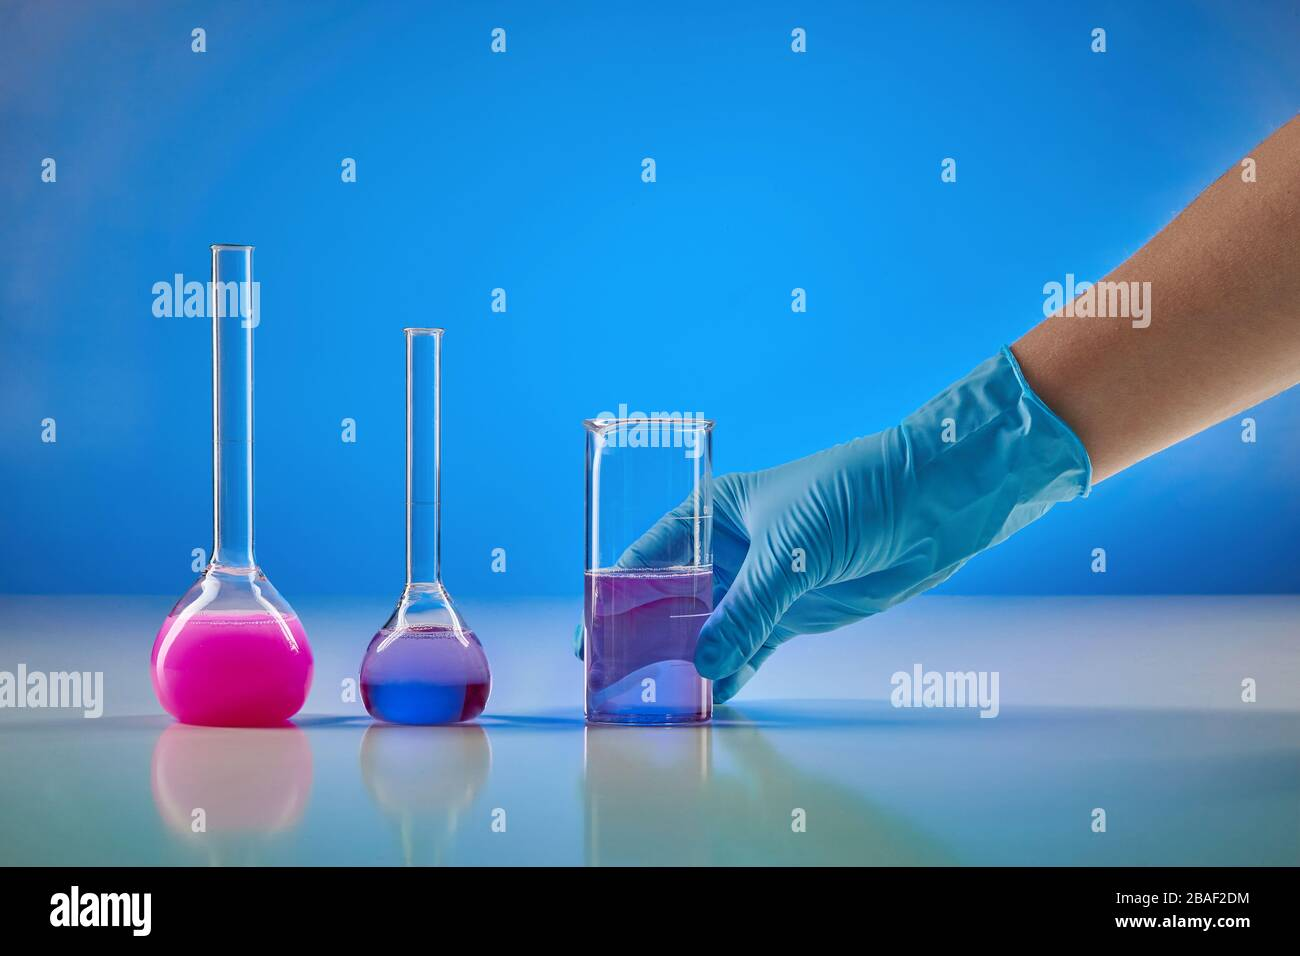 Hand in disposable glove holding beaker with purple liquid. Two medical flasks with colorful chemical reagents, blue background. Coronavirus laborator Stock Photo